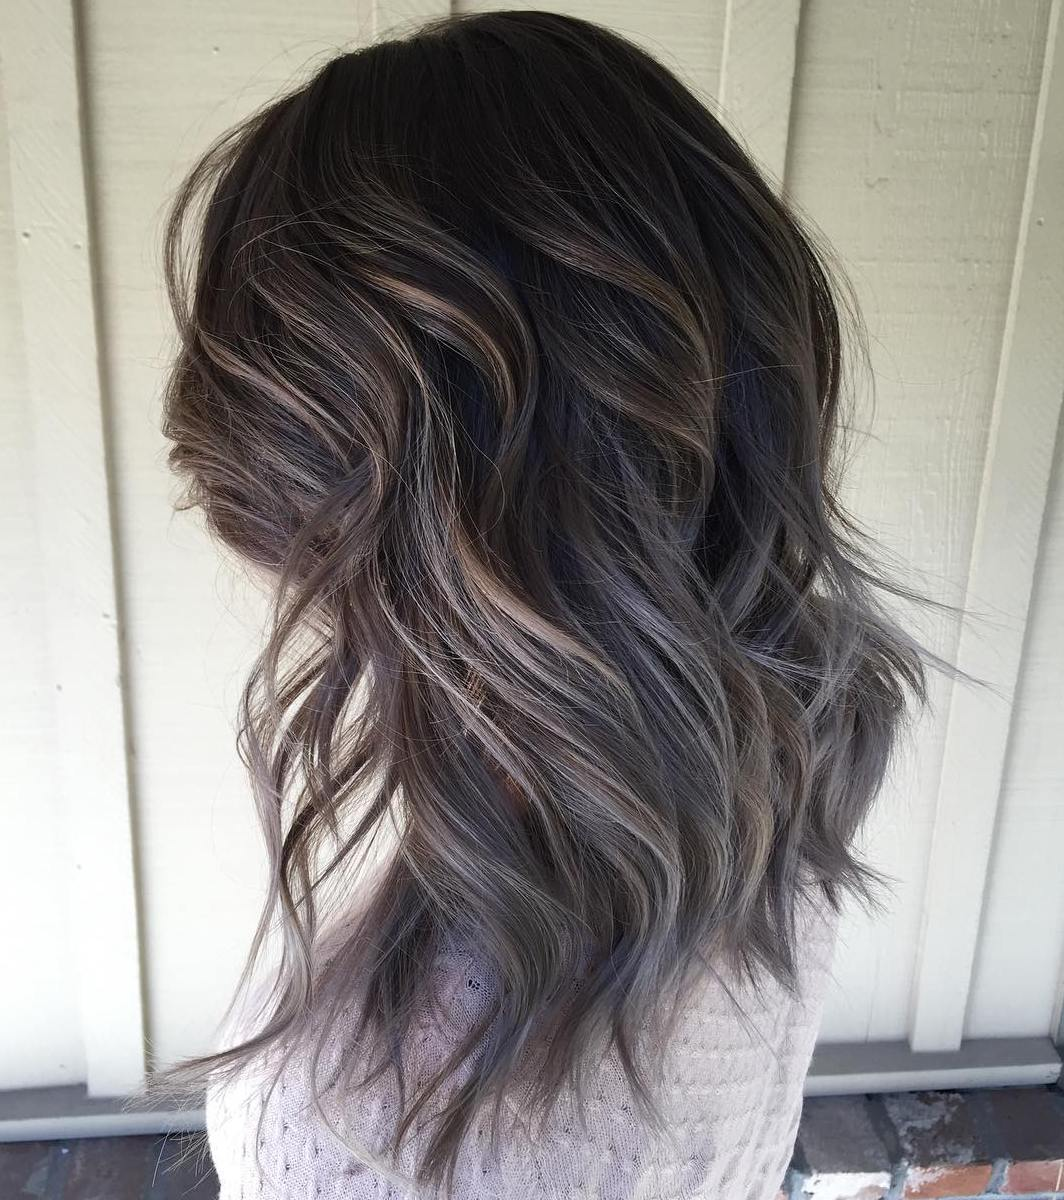 45 ideas of gray and silver highlights on brown hair solutioingenieria